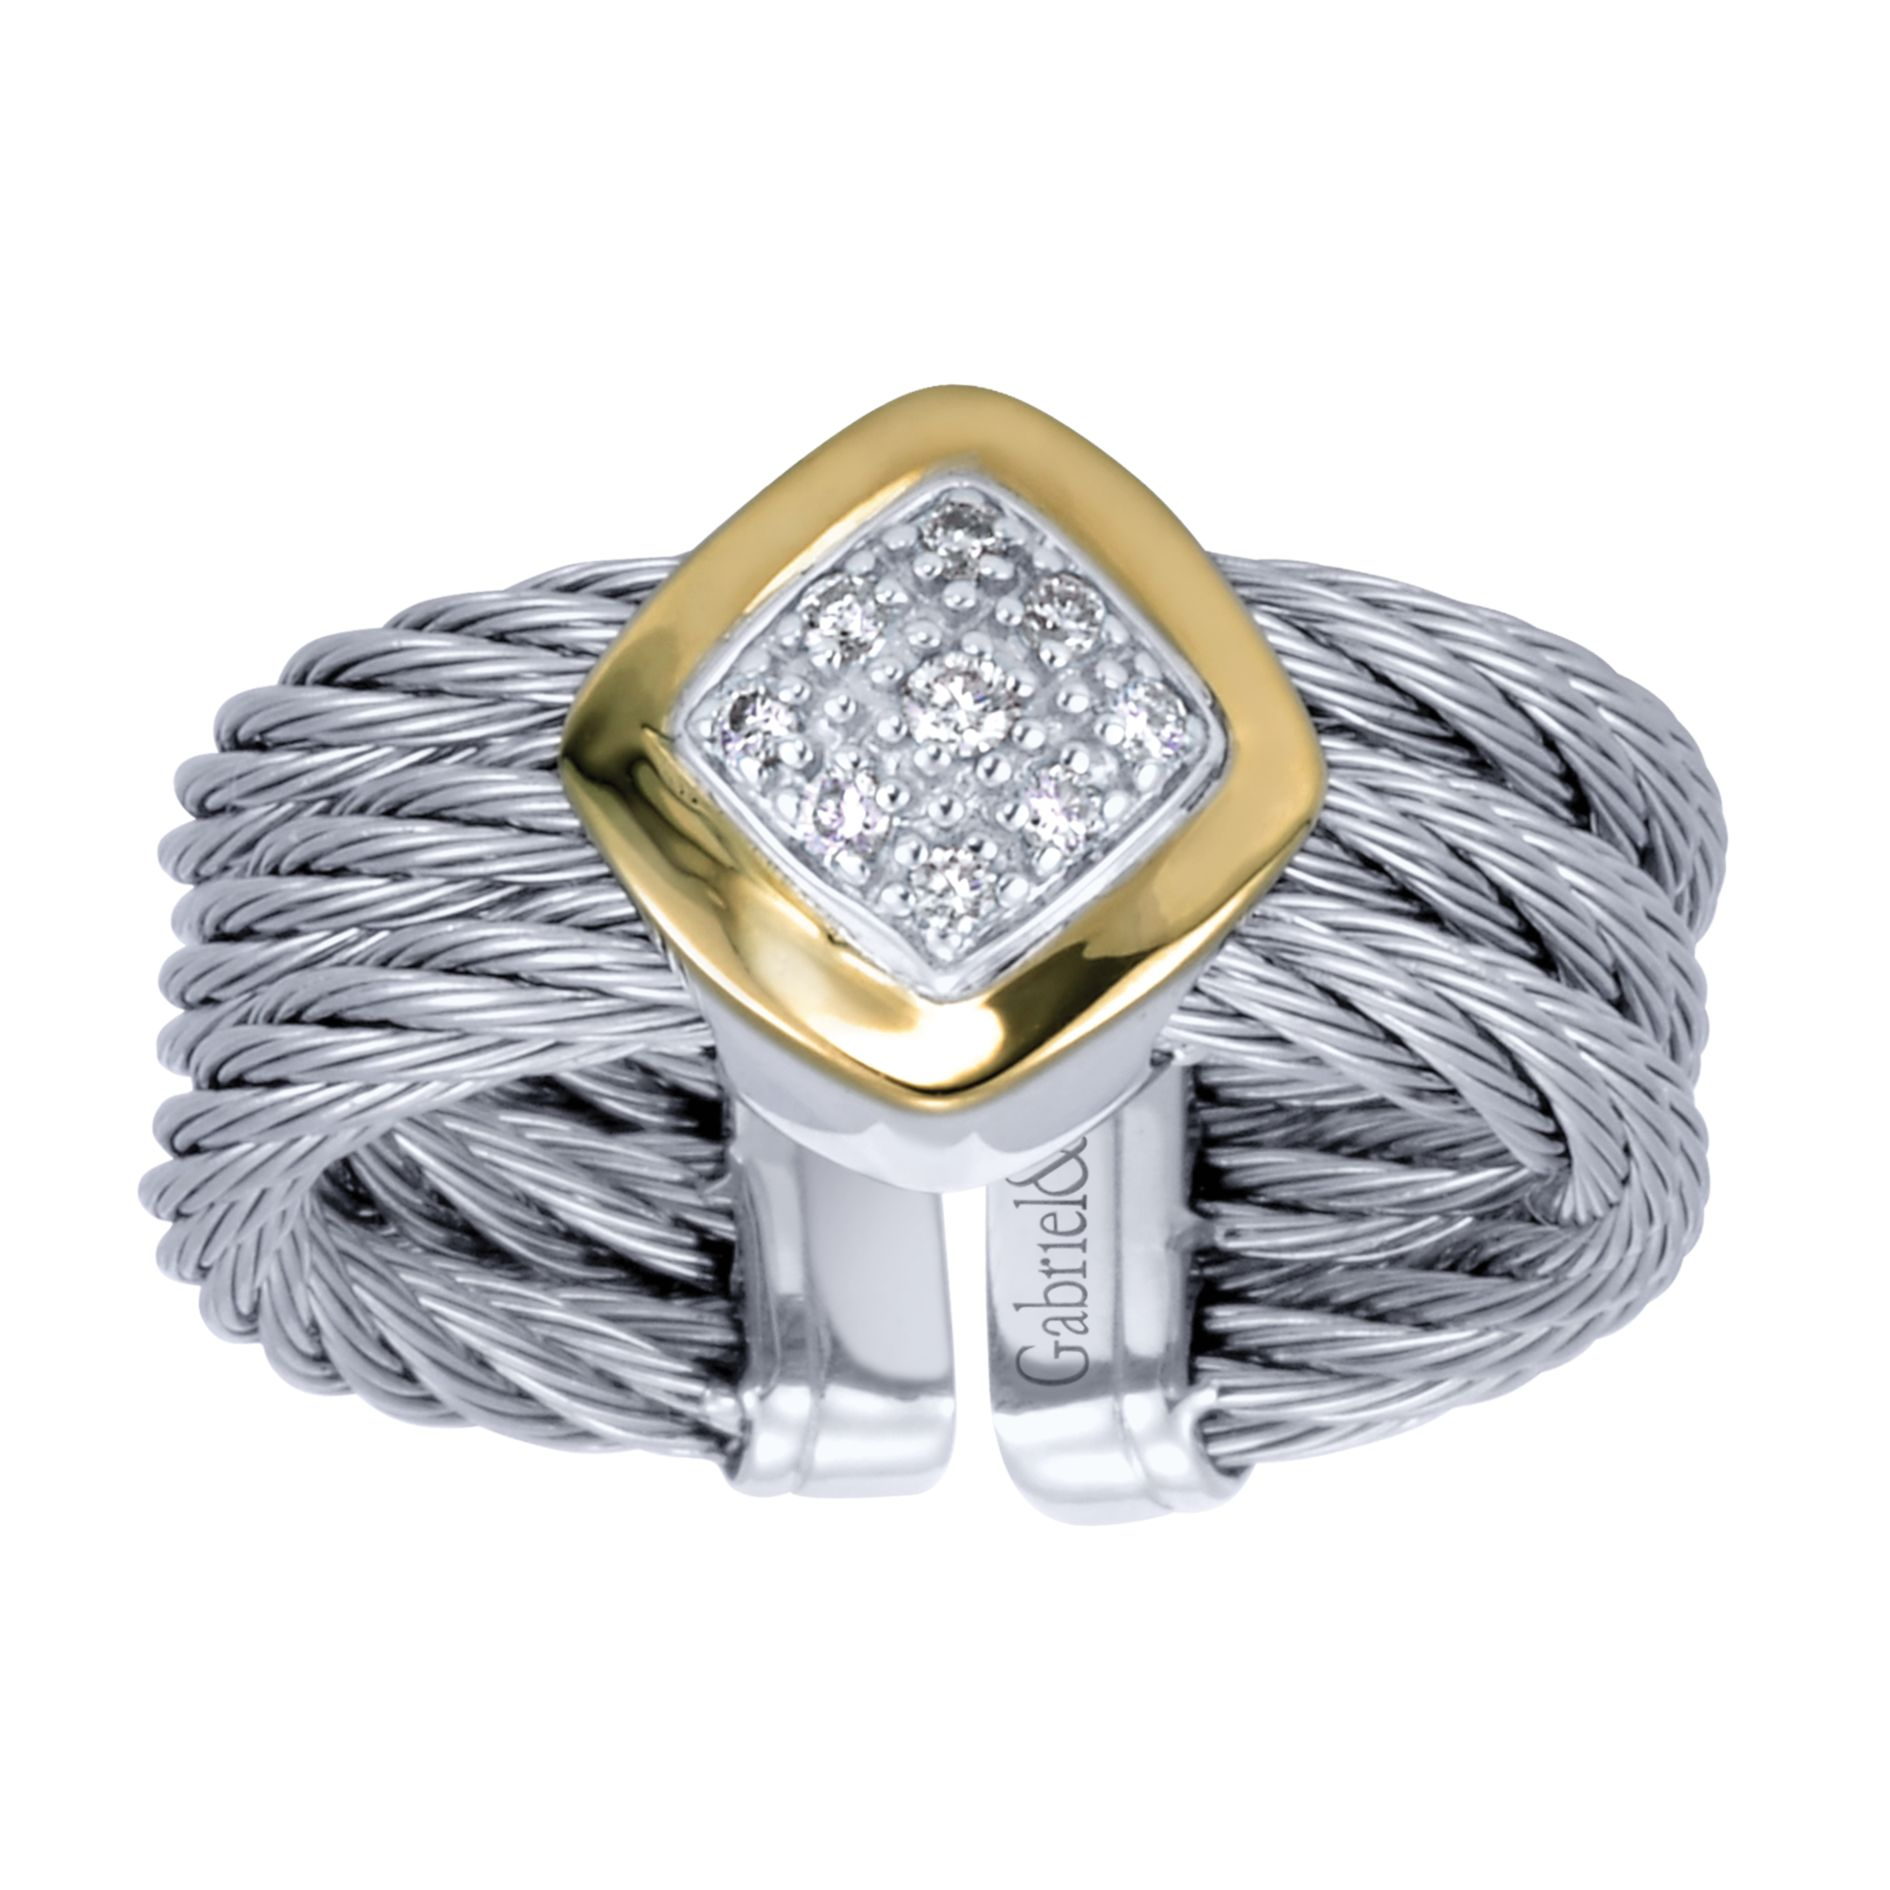 Rings - TWISTED CABLE DIAMOND LADIES RING - image #4